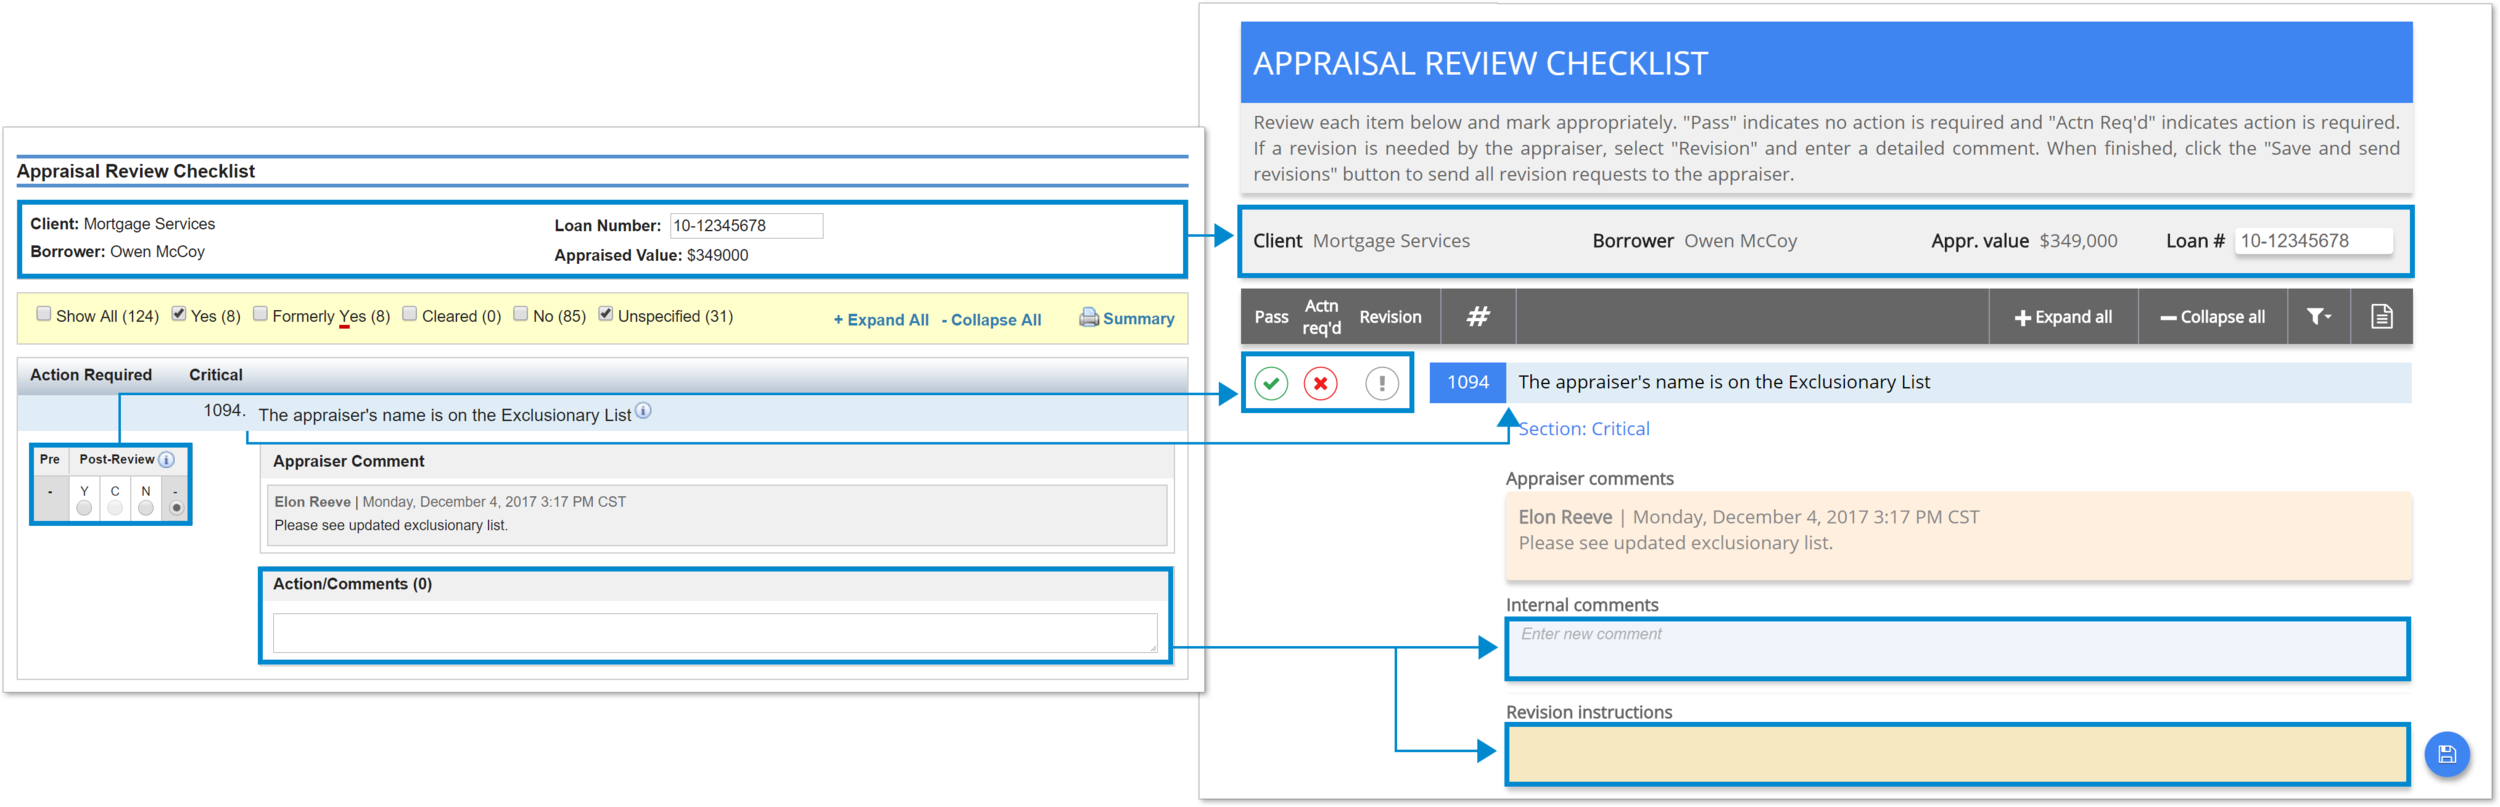 Click to see a larger view of the current and new checklist versions.